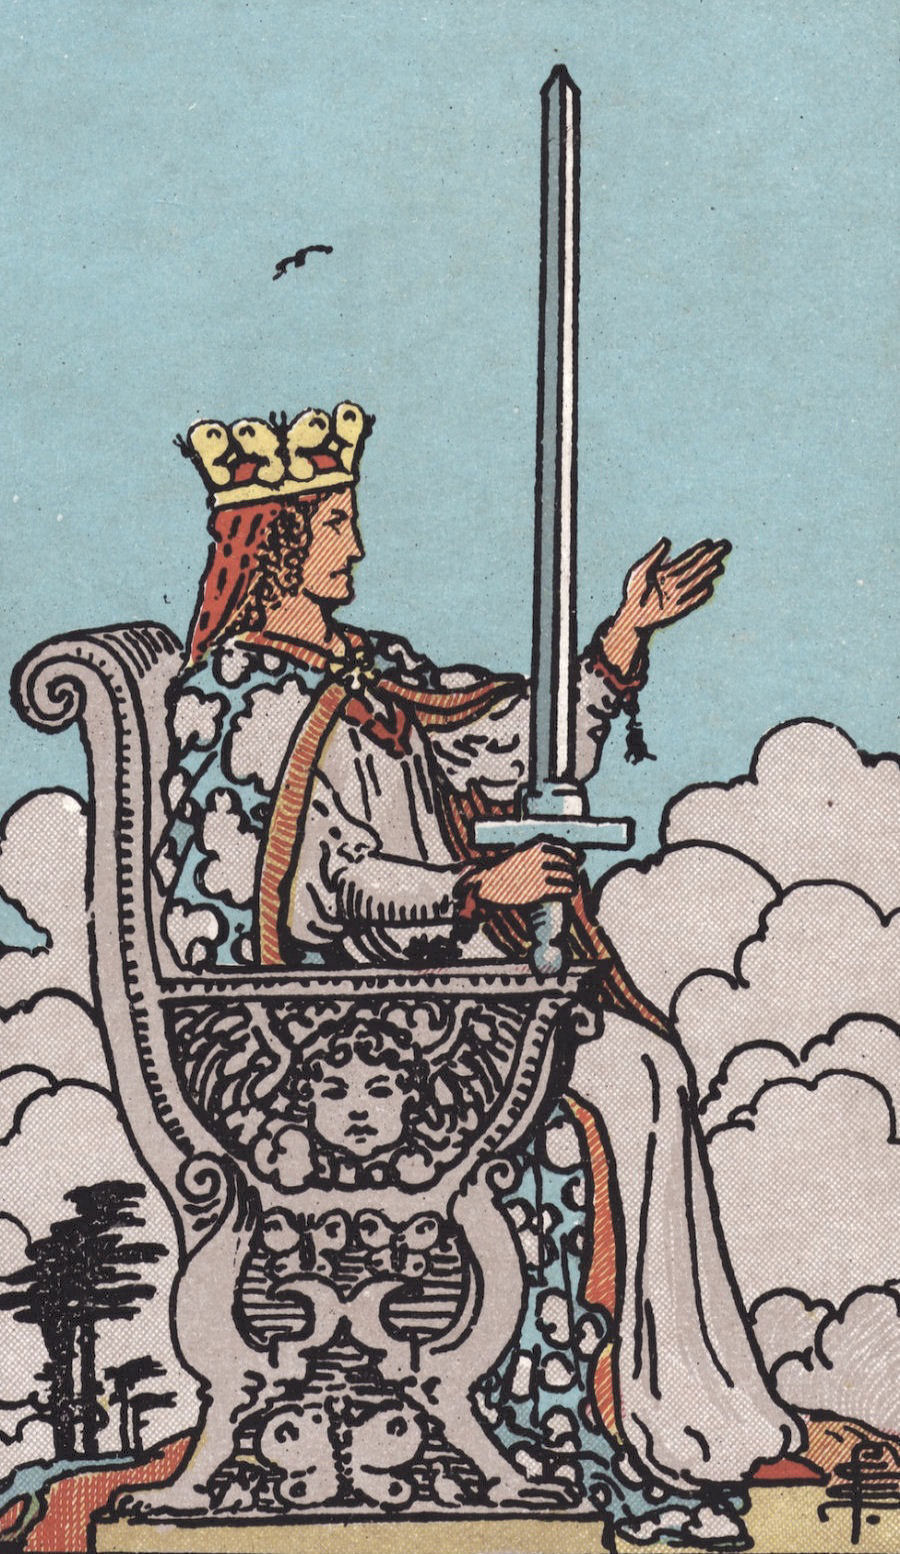 Rider Waite Smith Queen of Swords Tarot Card Meaning